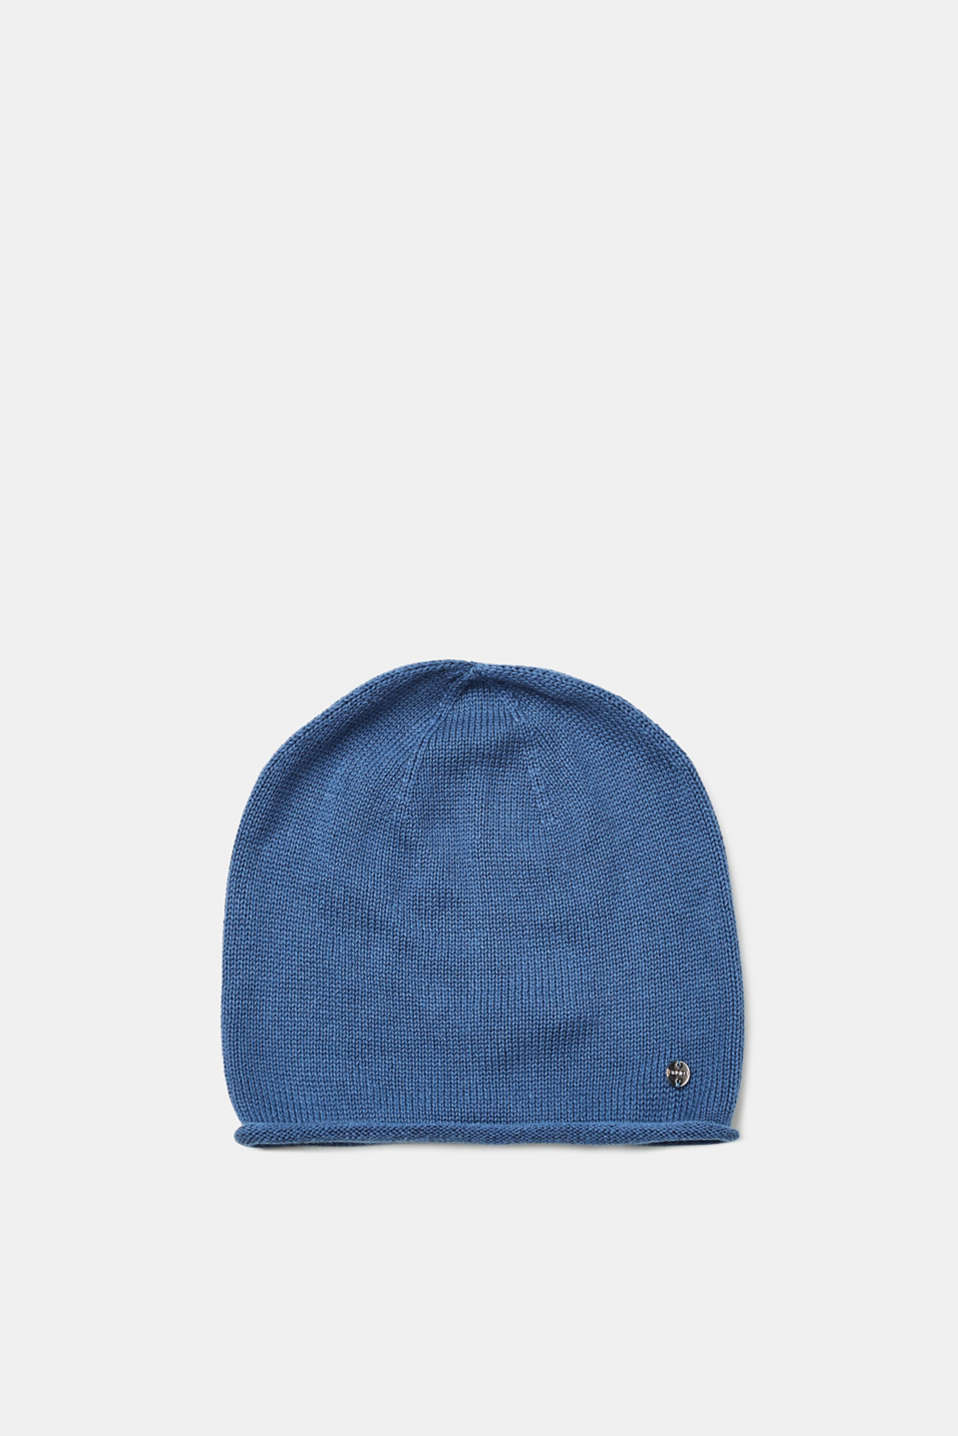 Esprit - knitted hat in 100% cotton